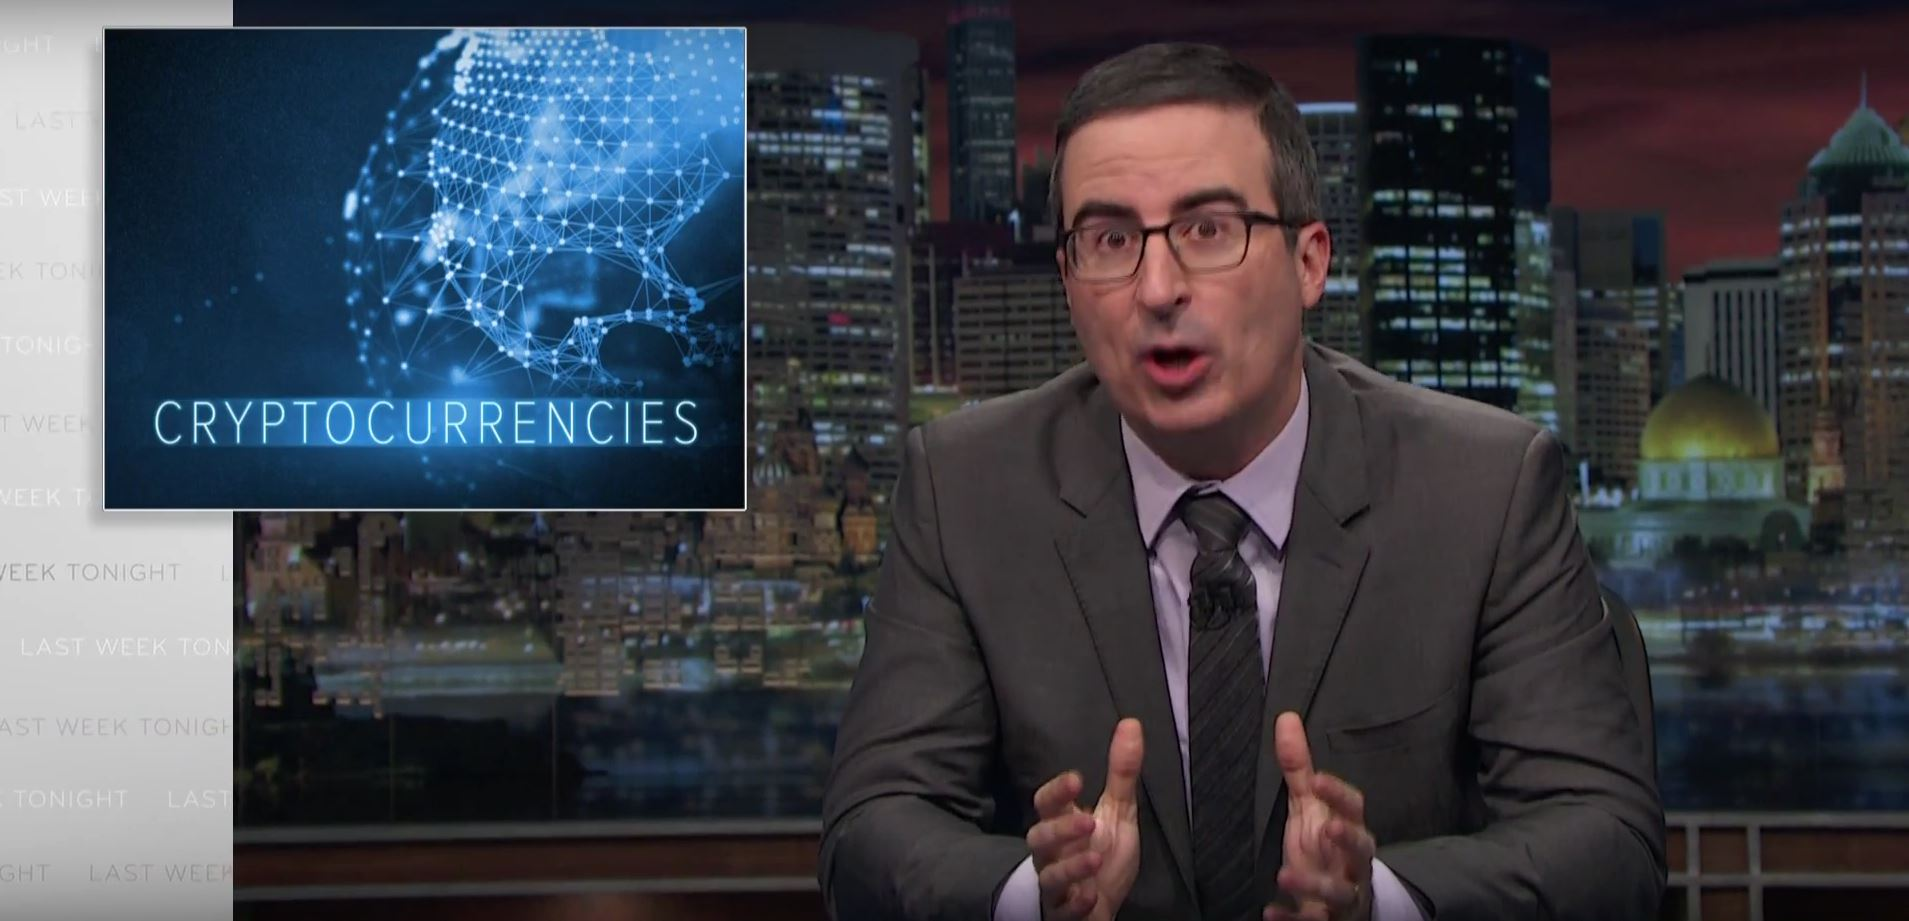 John Oliver and Cryptocurrencies